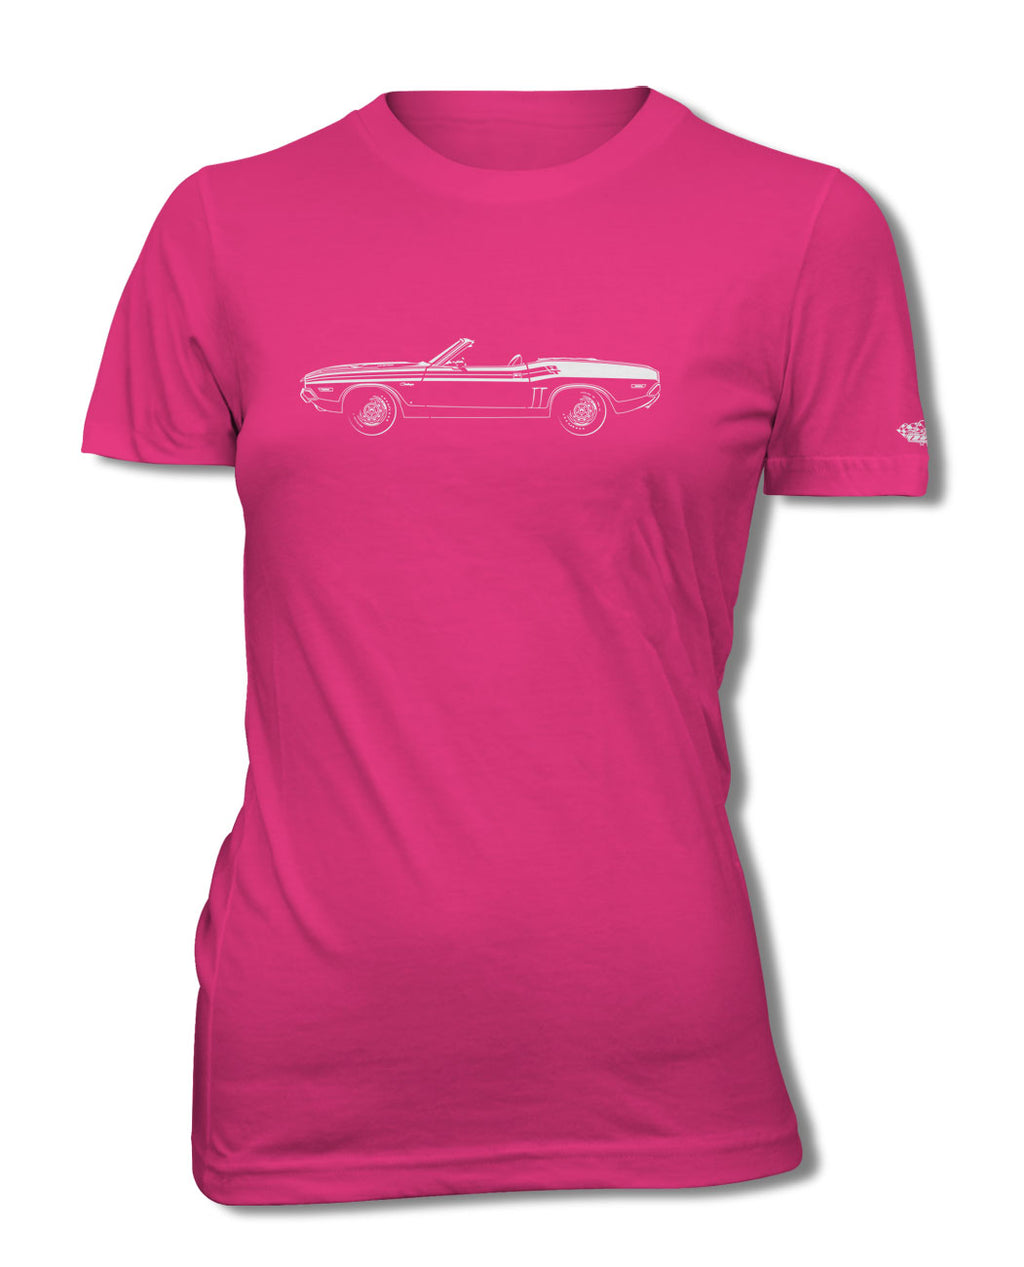 1971 Dodge Challenger RT with Stripes Convertible Bulge Hood T-Shirt - Women - Side View